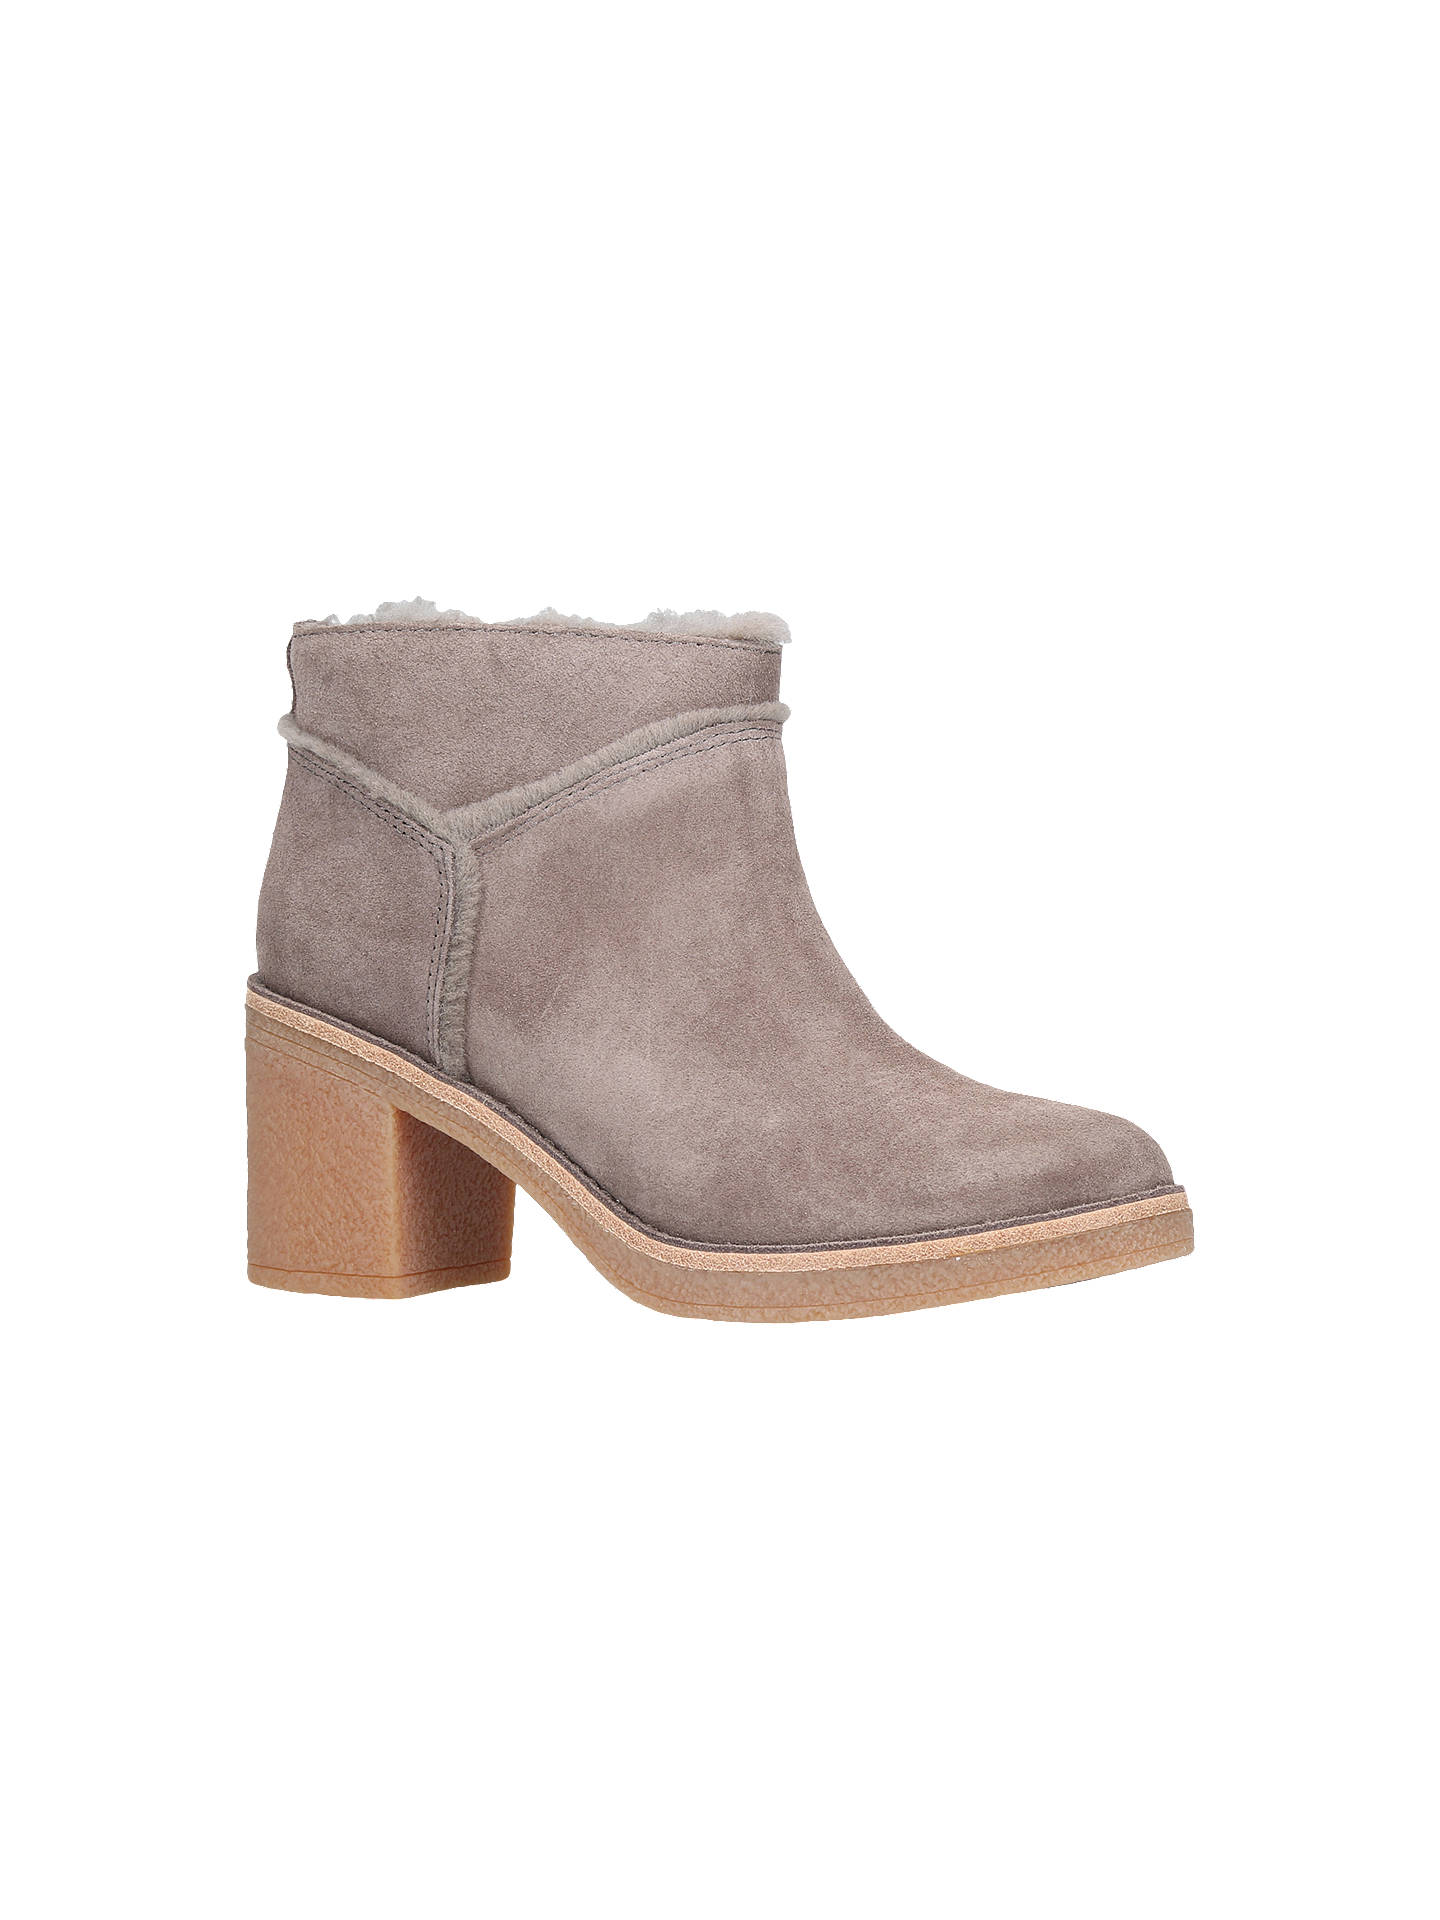 6b8549a81e BuyUGG Kasen Ankle Boots